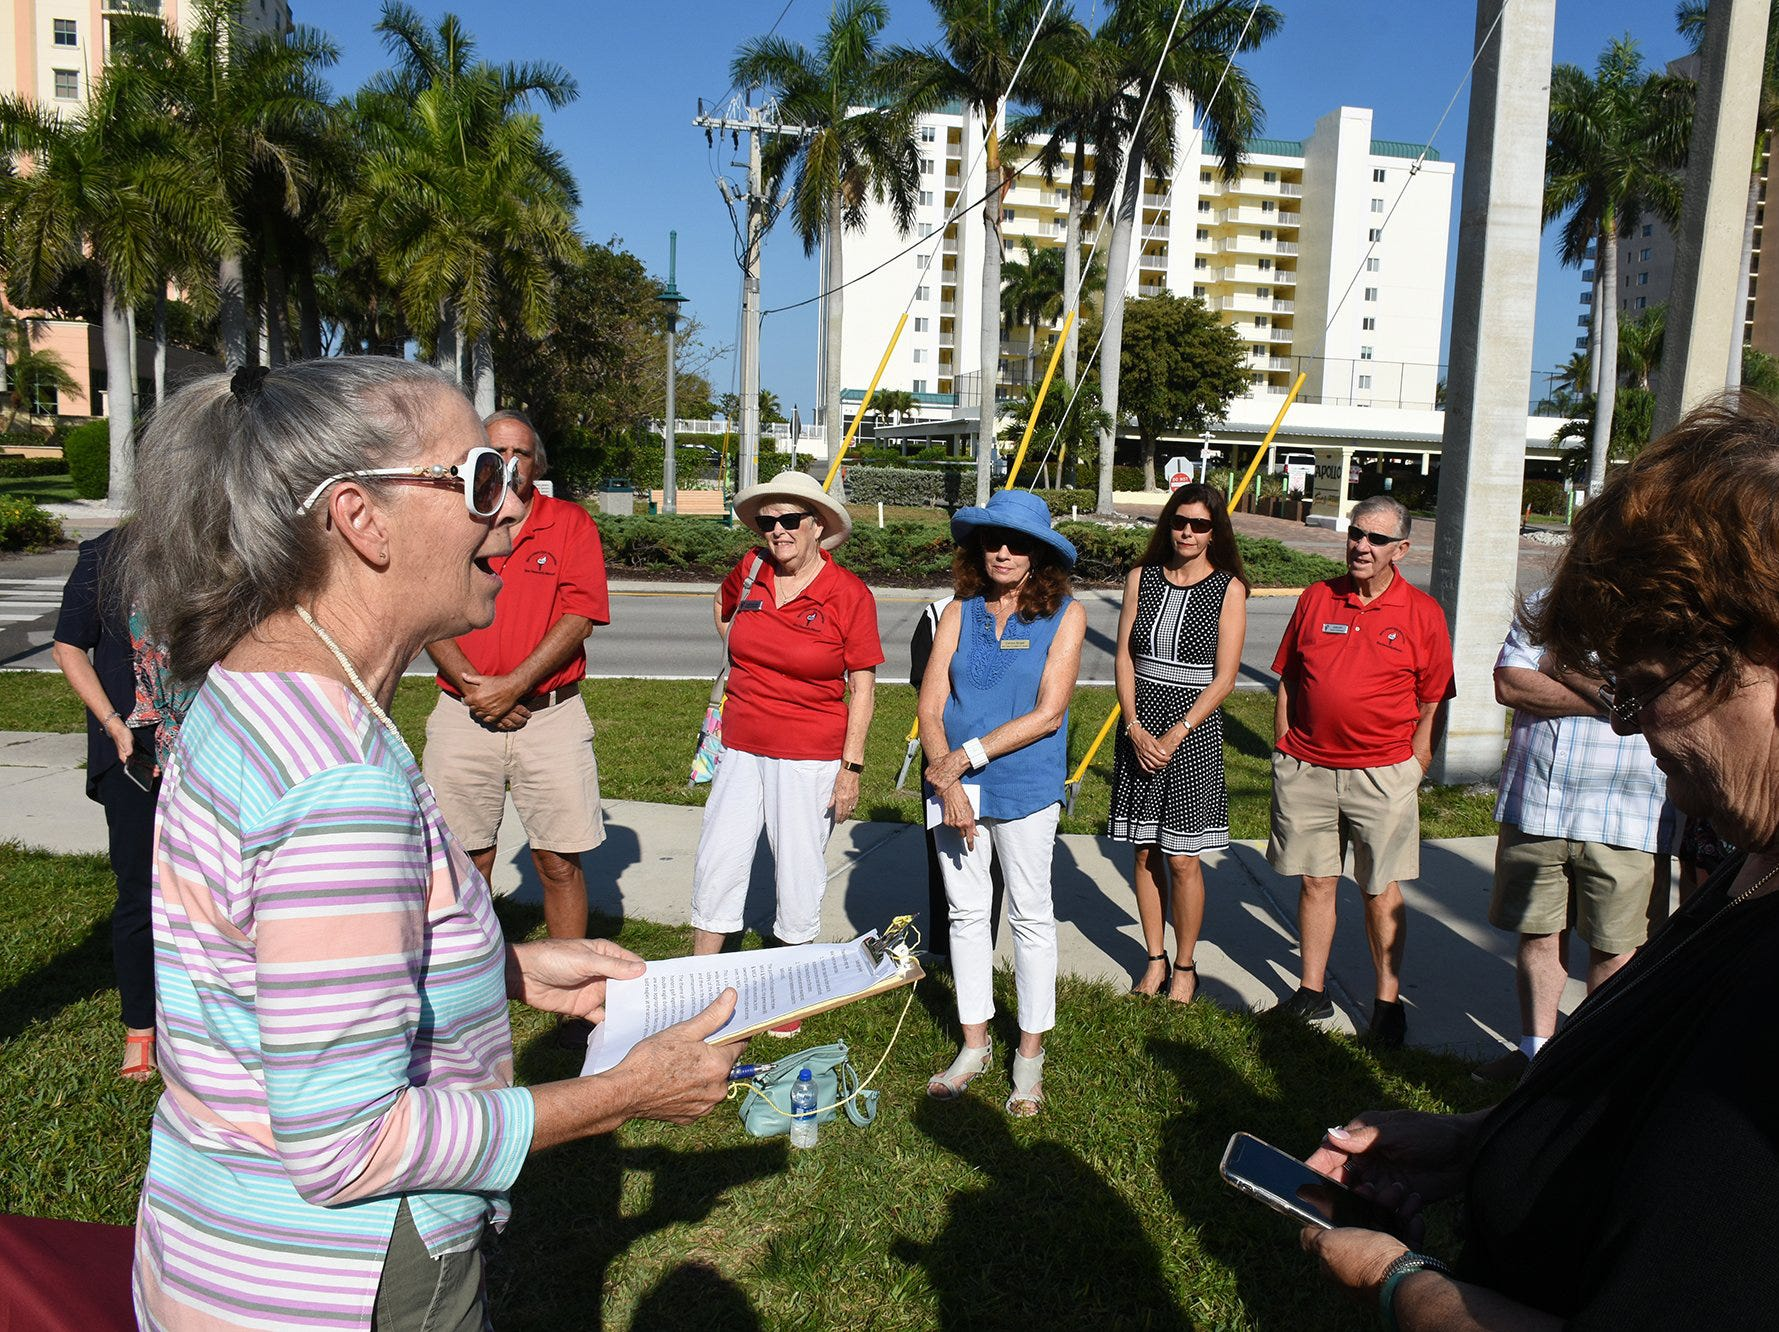 MIFA president Karen Swanker addresses the group. Friday morning, the Marco Island Foundation for the Arts unveiled a plaque with the names of donors who have contributed to the purchase of the Double Eagle sculpture at Sarazen Park on Marco.